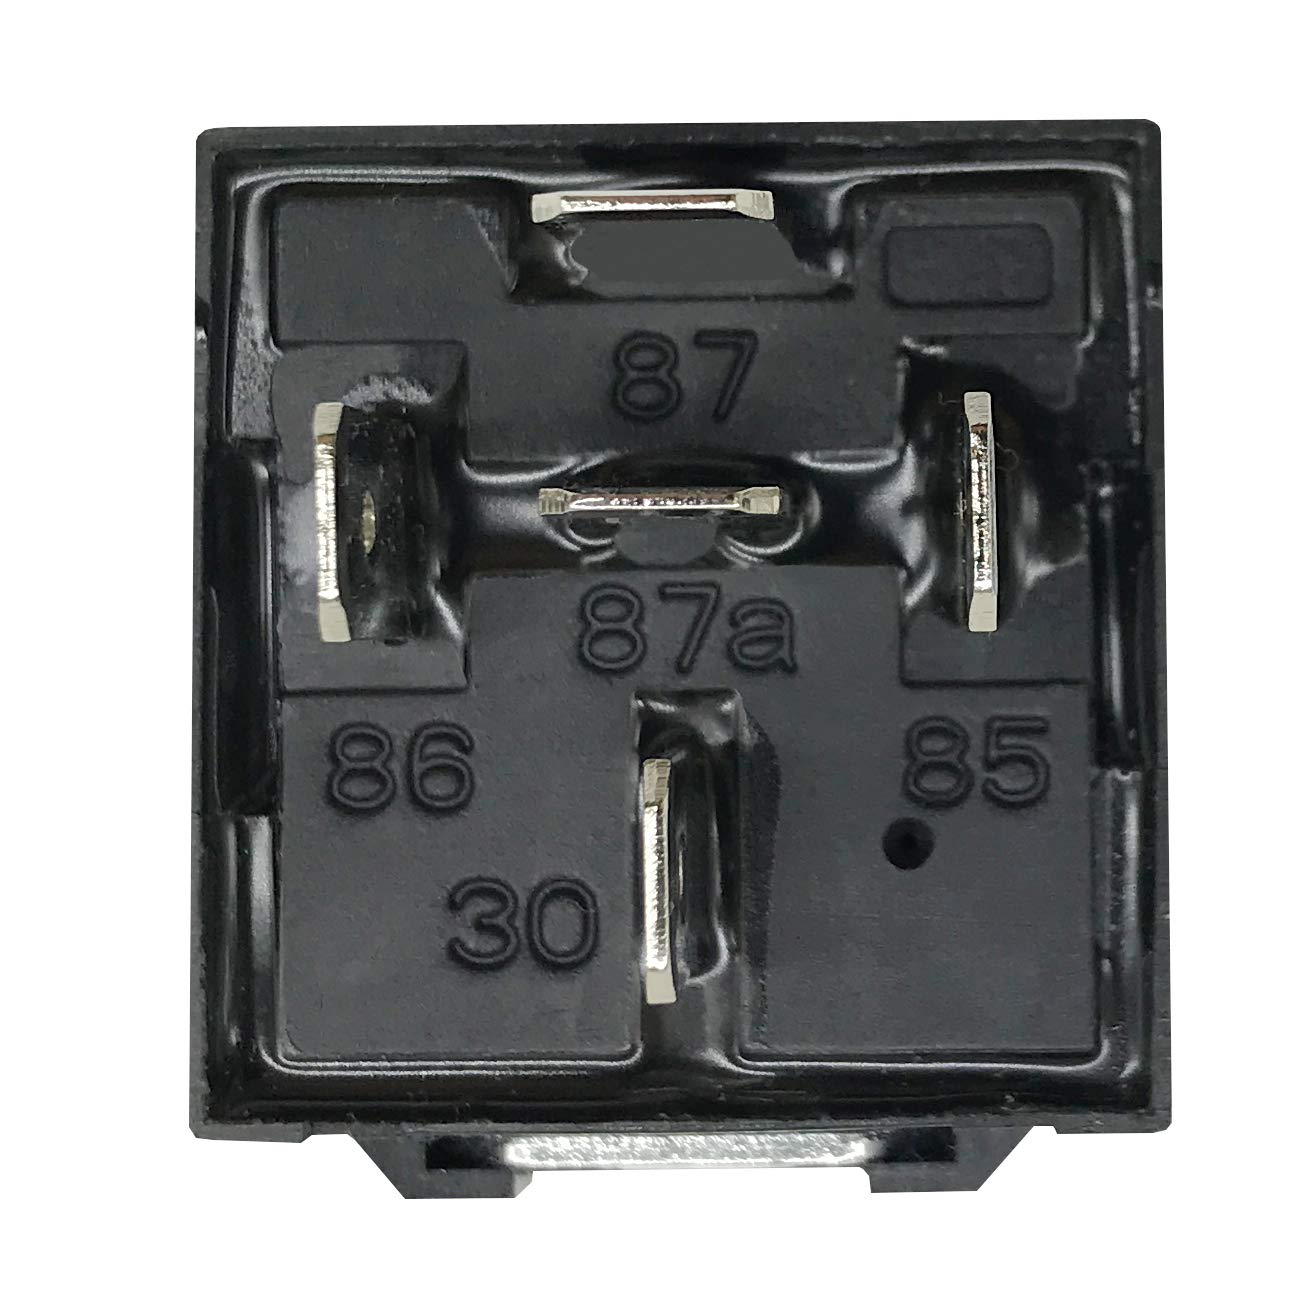 12 Pack 40//30 AMP 5 Pin SPDT 12 V DC Bosch Style Relay Switch for Electrical Automotive Truck Marine Boat No Relay Socket and Wiring Harness